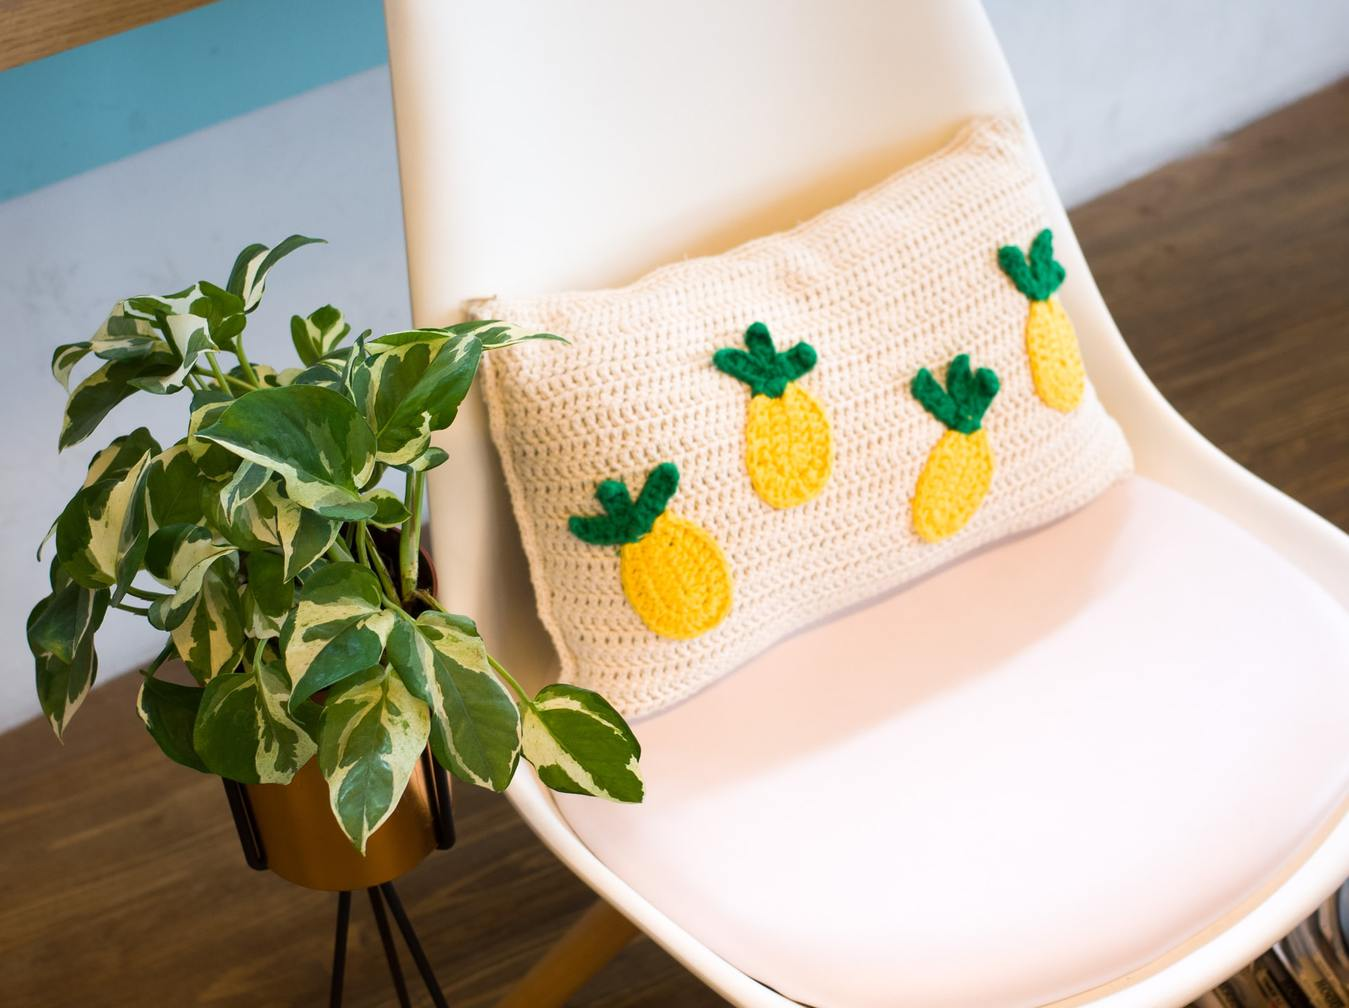 Crocheted Pillow with Pineapples on a Chair